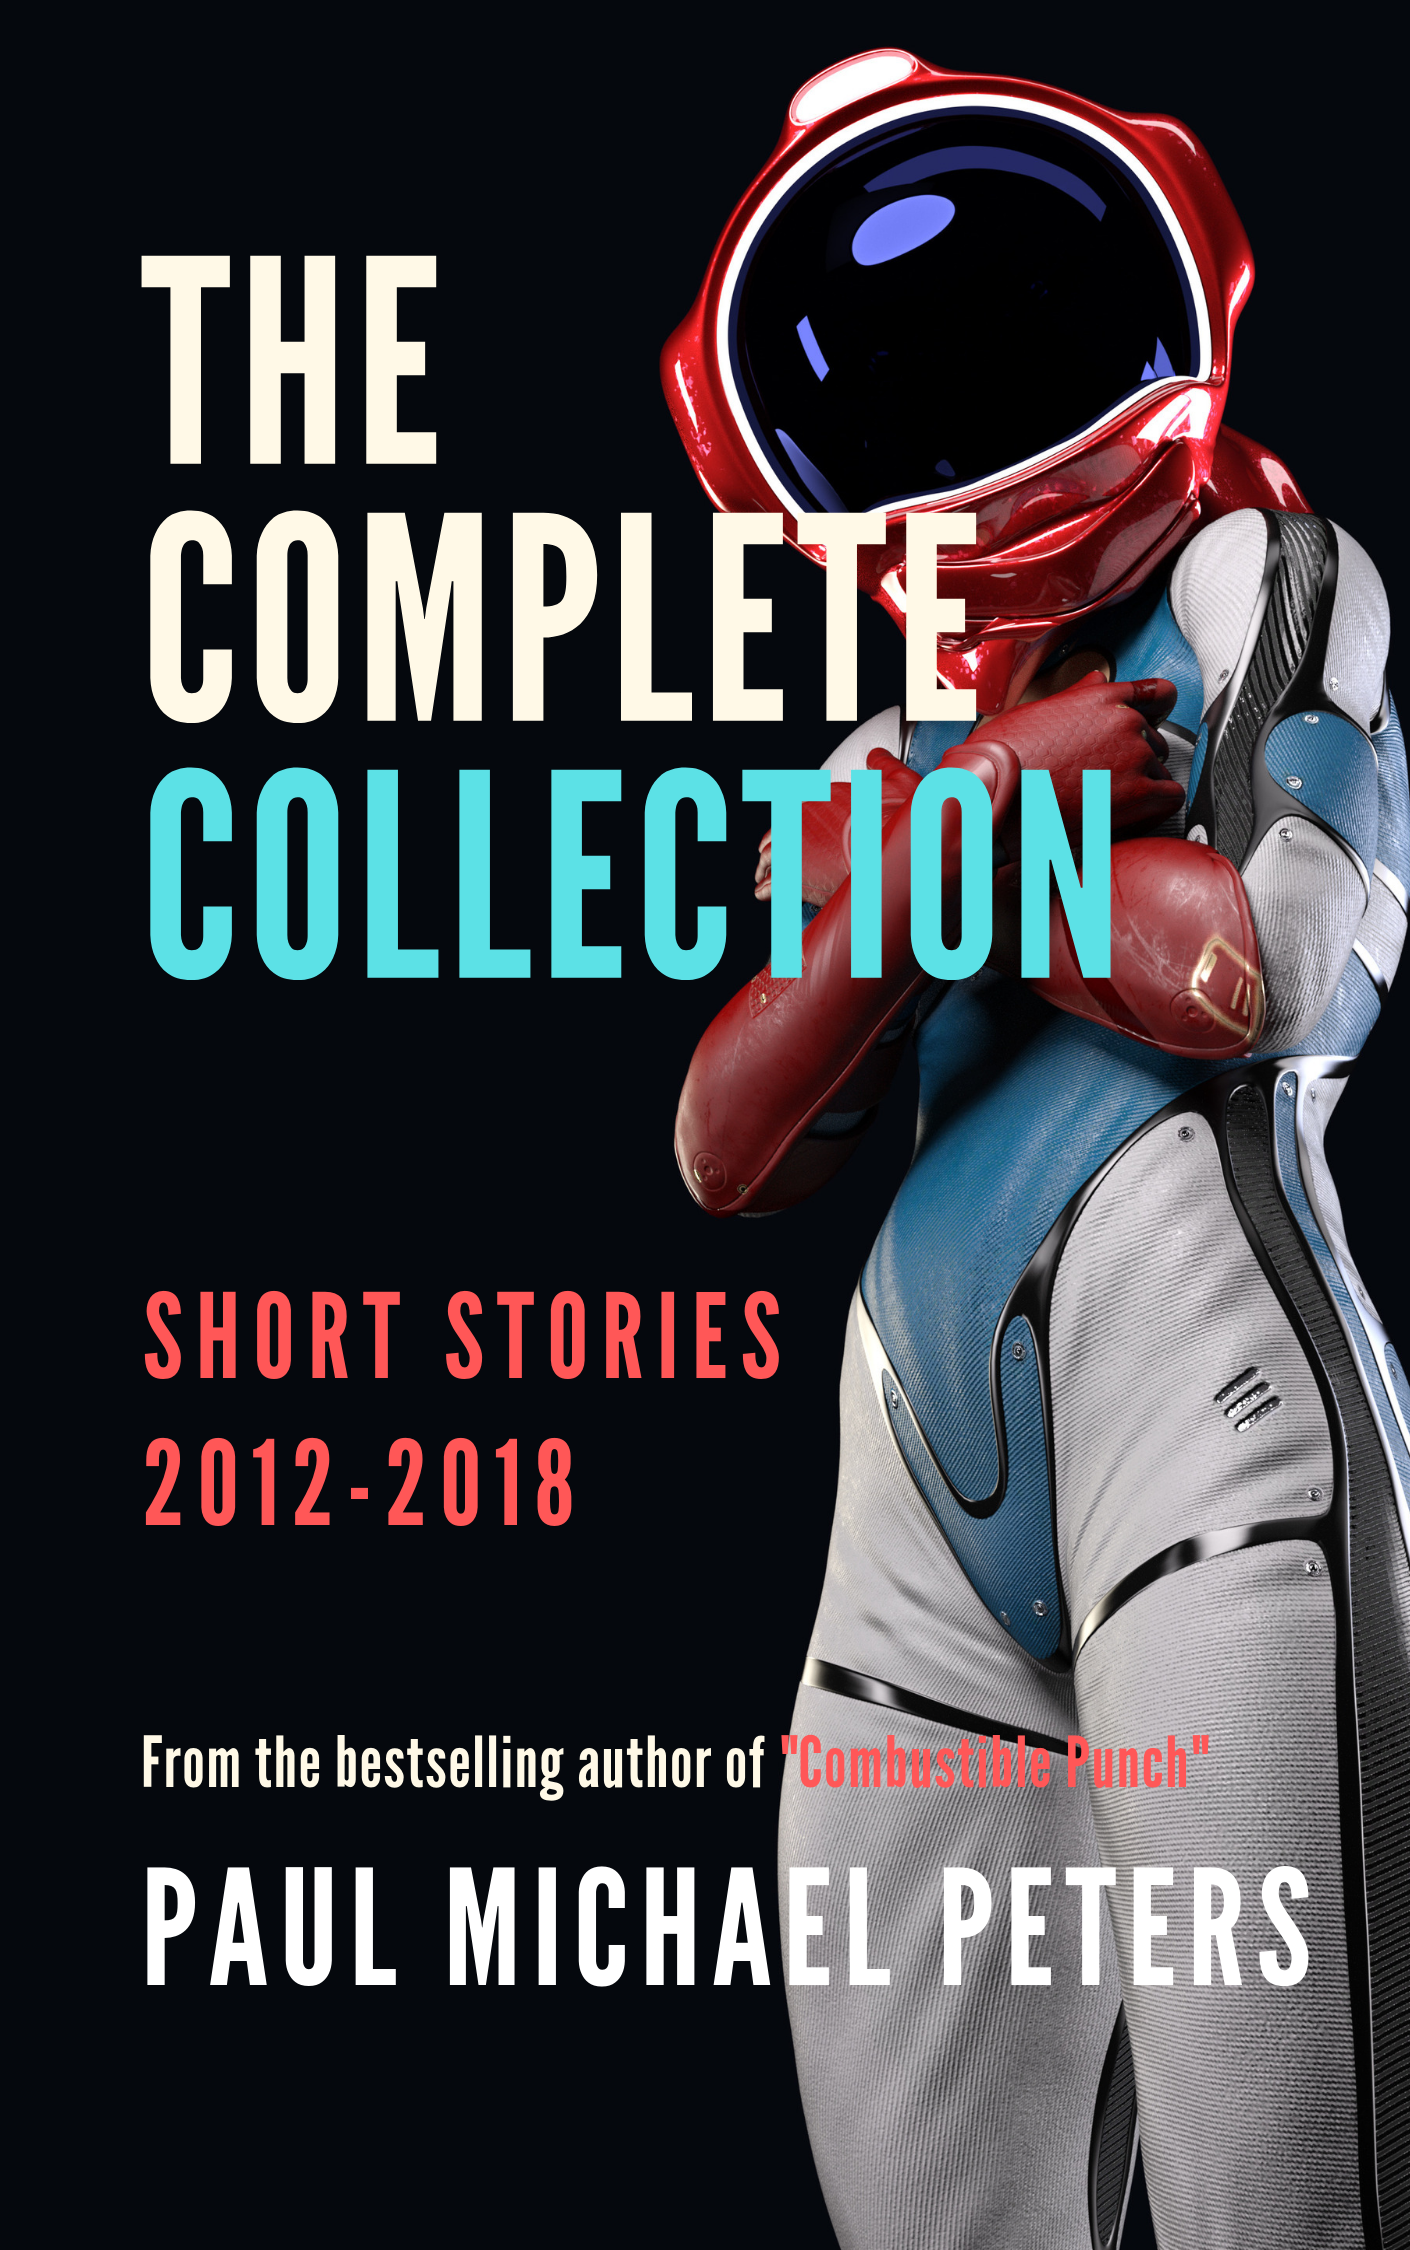 Paul Michael Peters: The Complete Collection of Short Stories 2012 - 2018